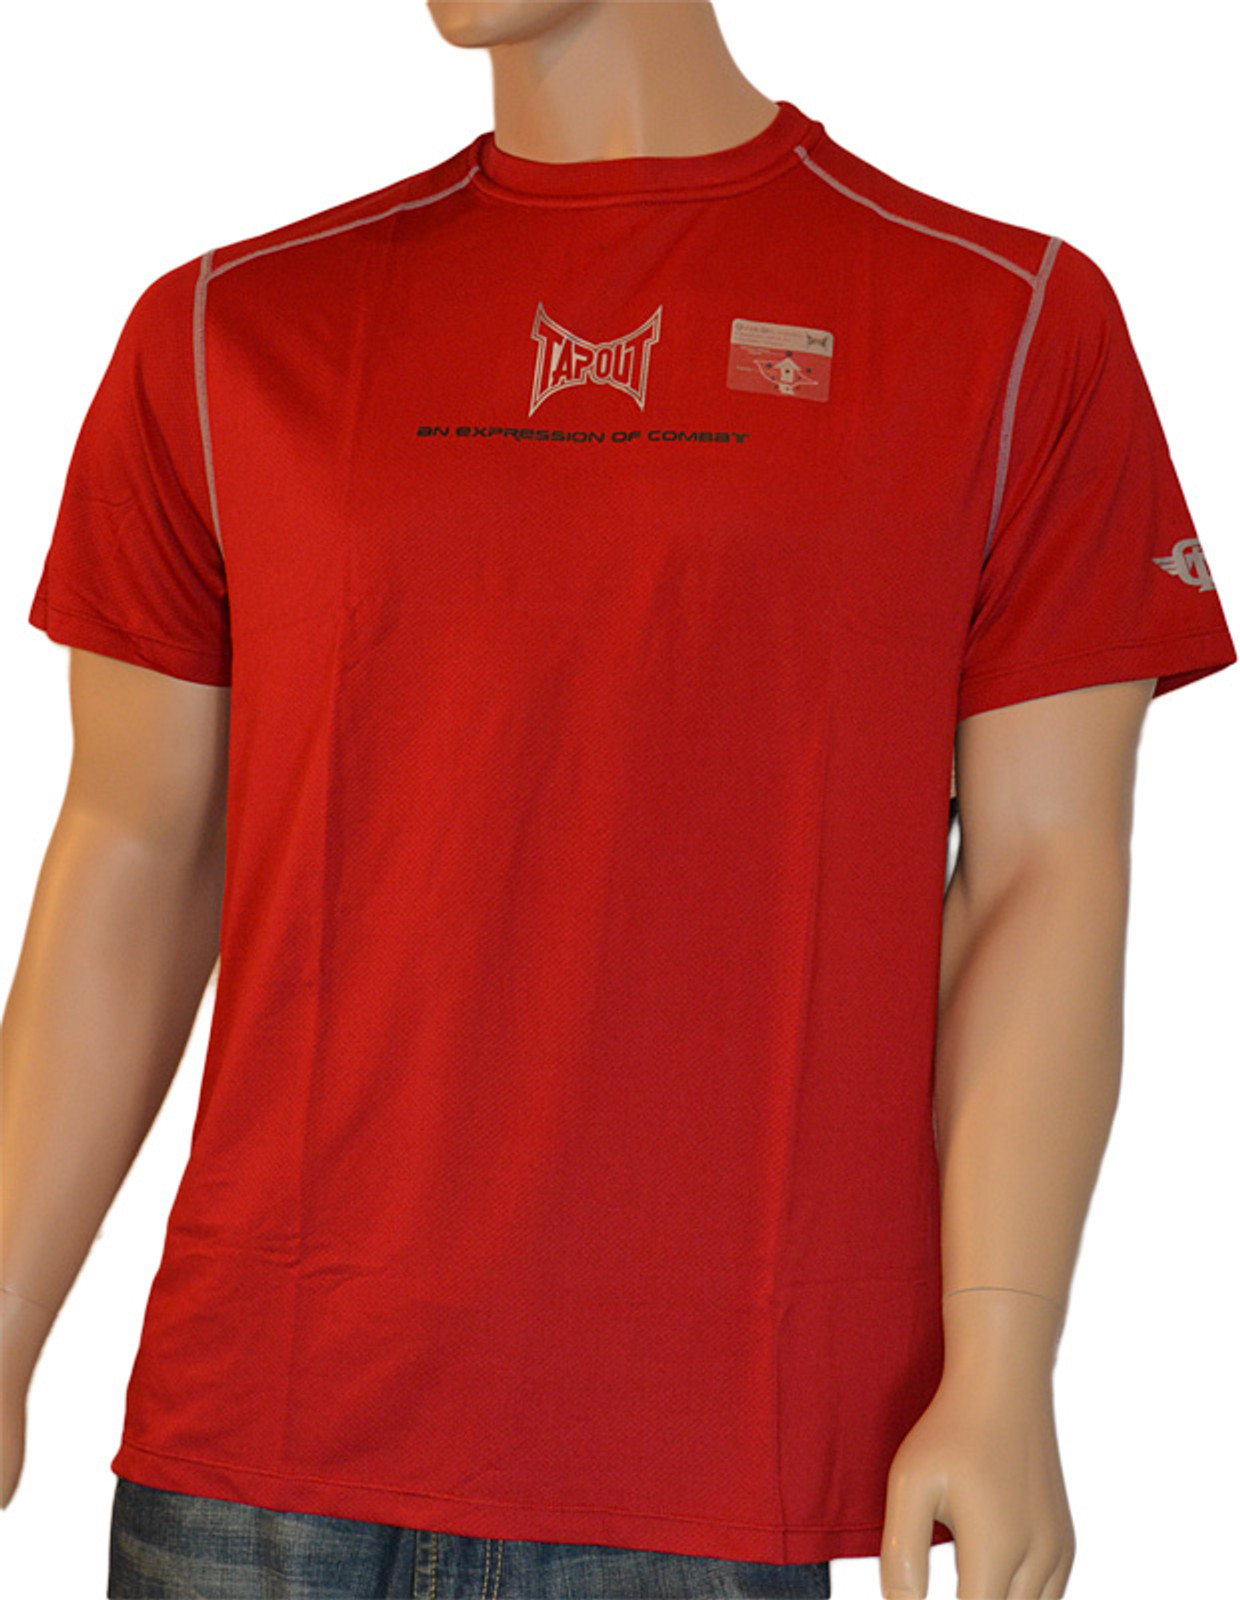 Tapout Pro Herren Kurzarm Kompression T-Shirt Fitted for Combat in Rot